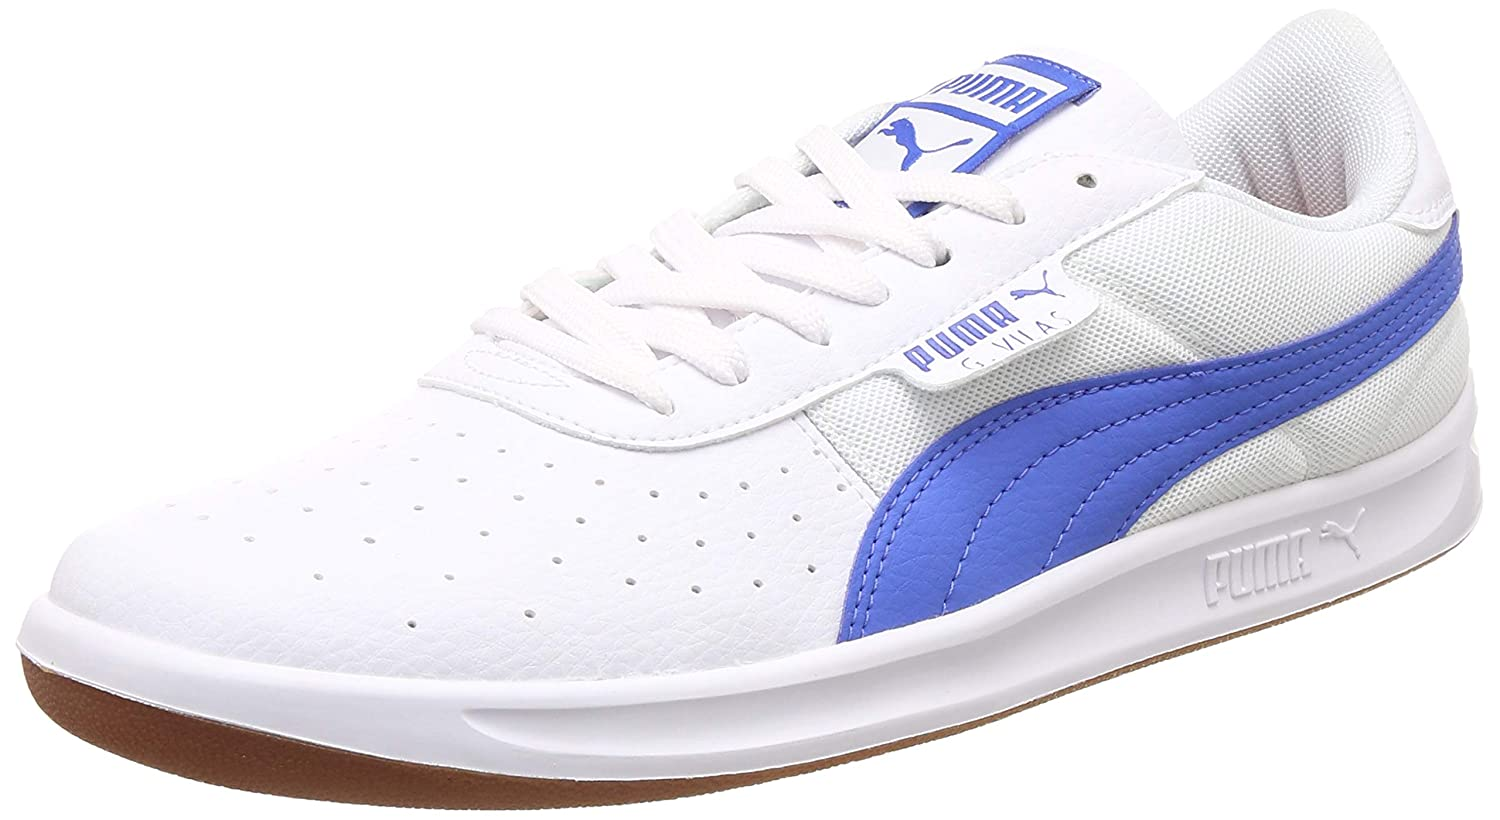 4beb6cbe5e40 Puma Men s G. Vilas 2 Core IDP White-Biscay Gr Sneakers  Buy Online at Low  Prices in India - Amazon.in